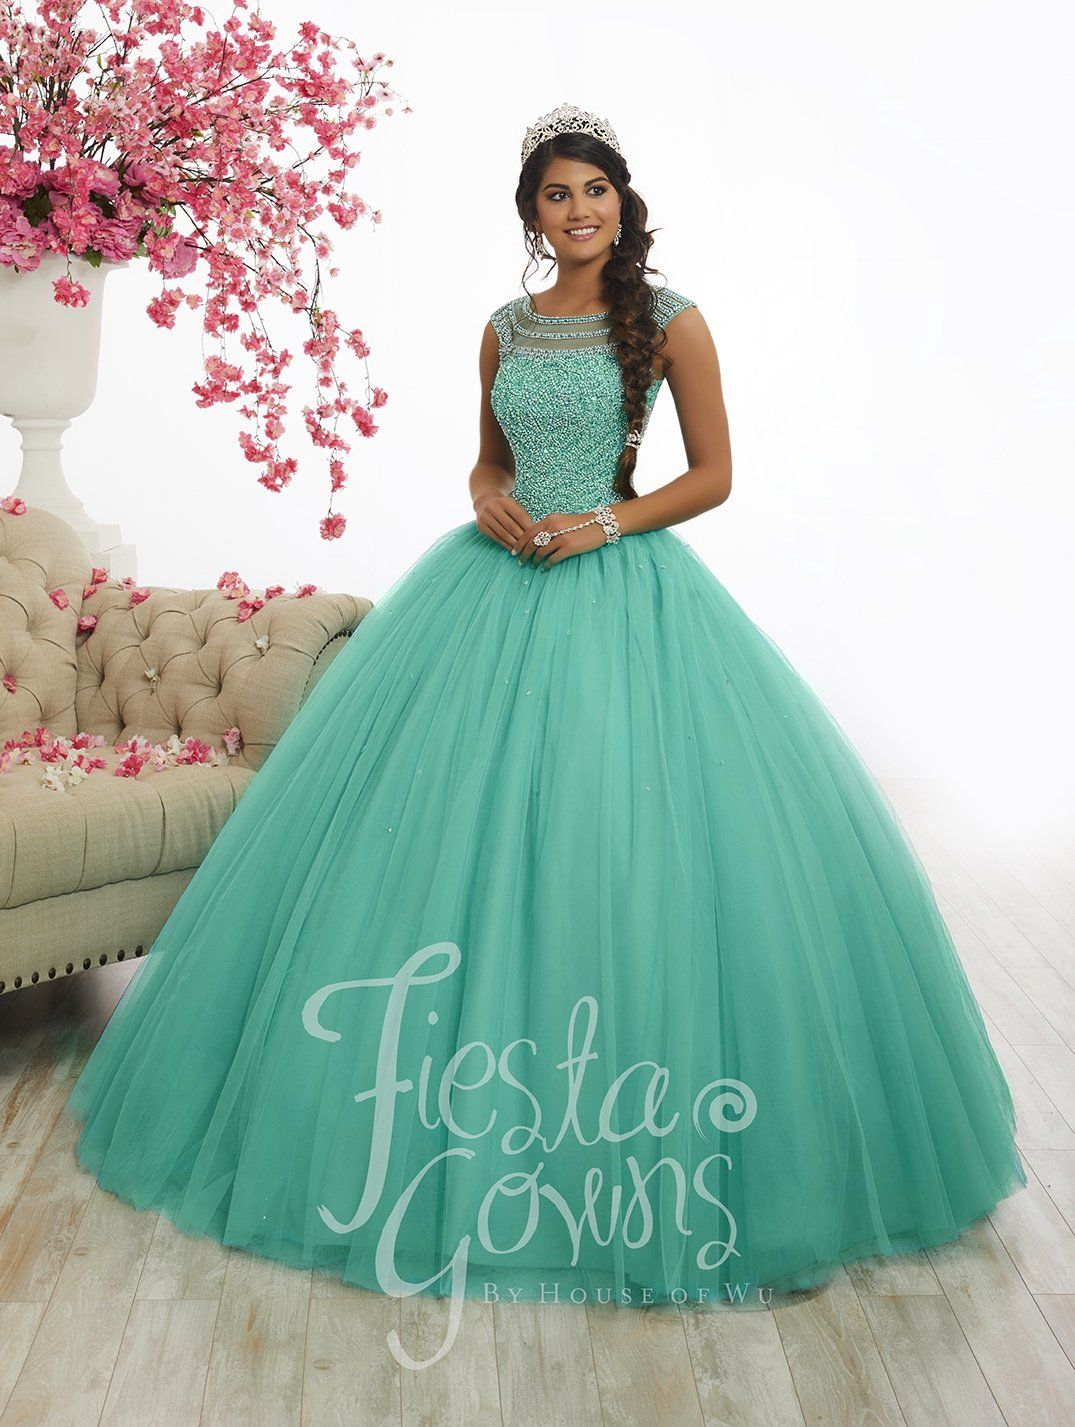 0659d02a1682 Embellished Cap Sleeve Quinceanera Dress by Fiesta Gowns 56340 in ...